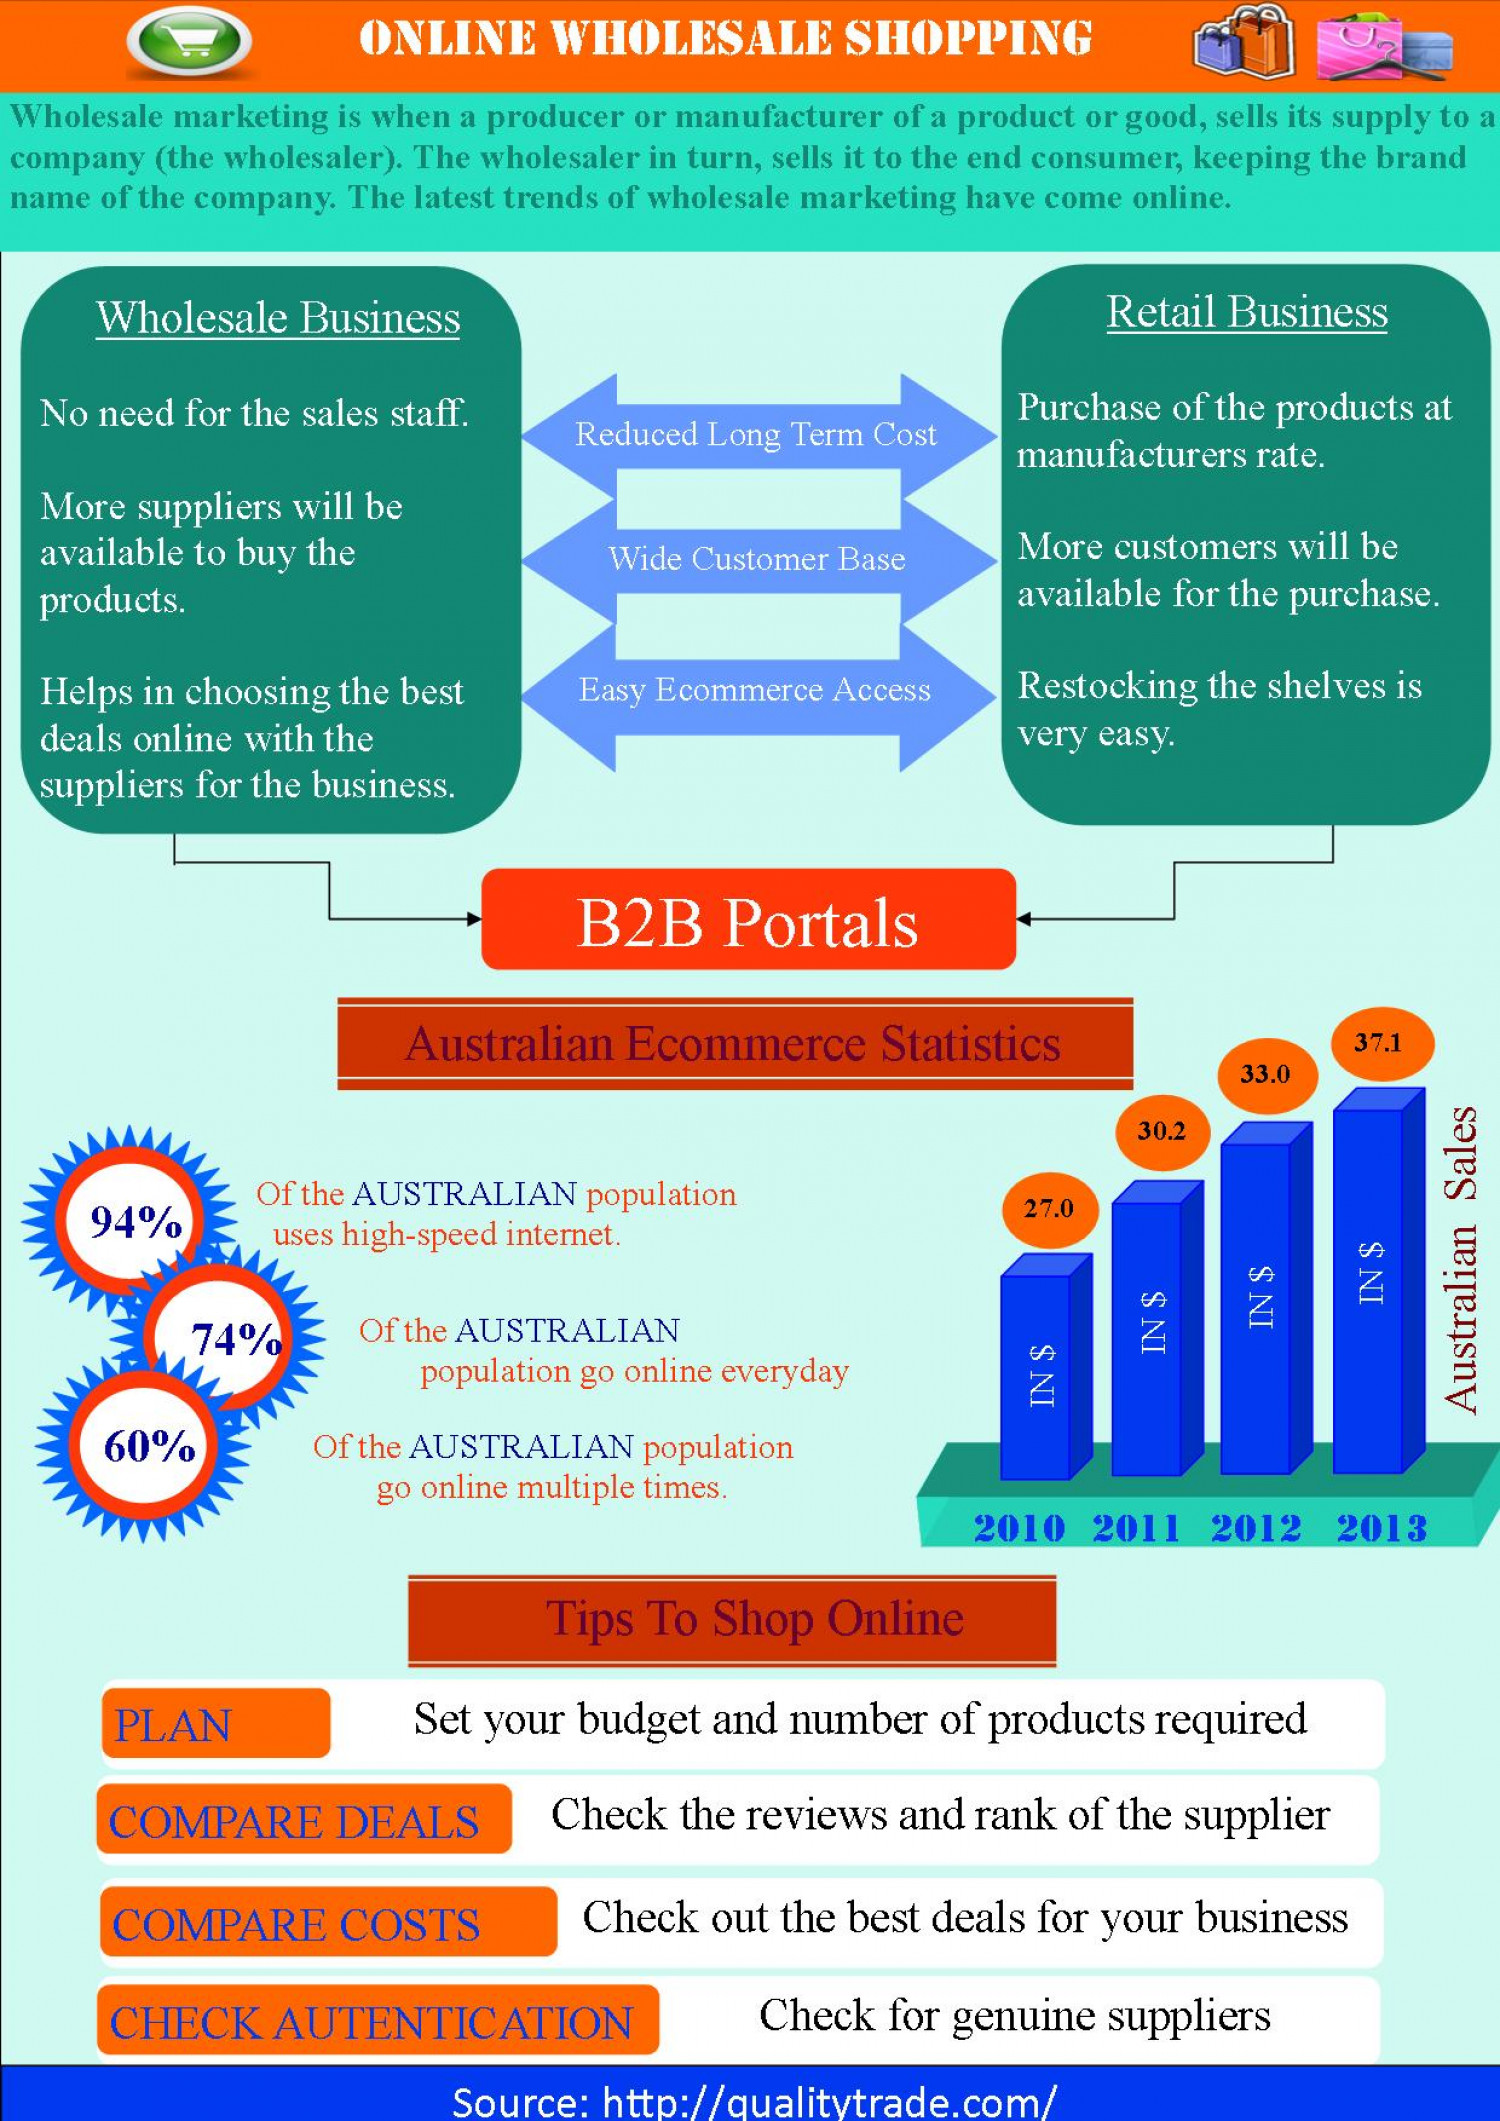 Online Wholesale Shopping Infographic